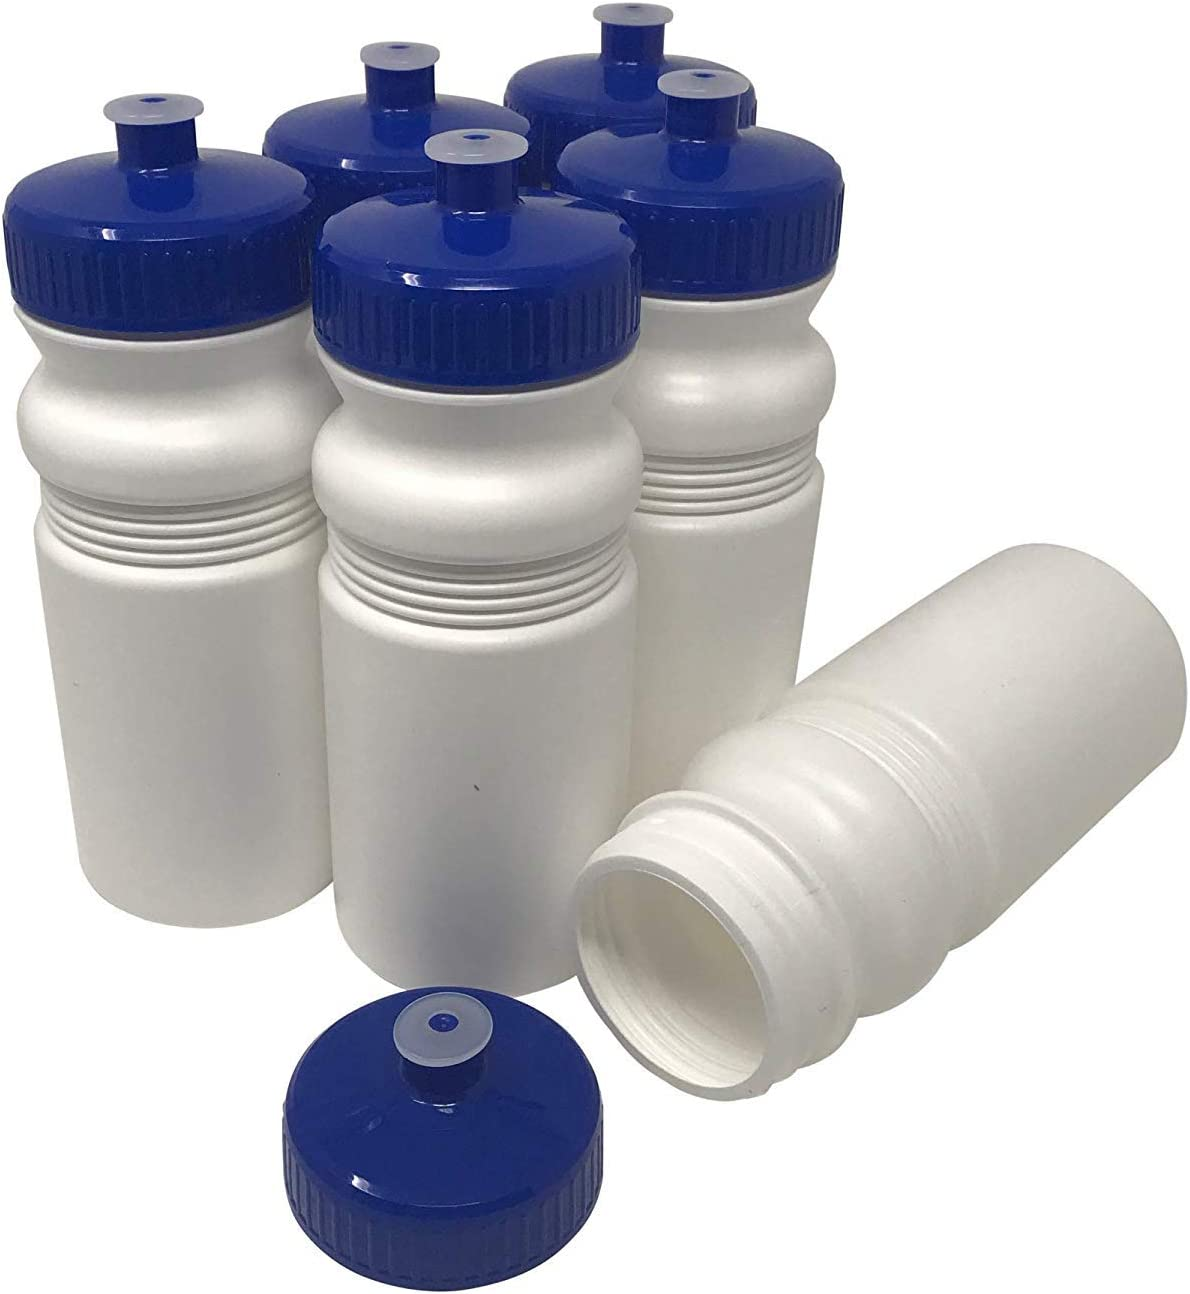 CSBD 20 oz Sports Water Bottles, 6 Pack, Reusable No BPA Plastic, Pull Top Leakproof Drink Spout, Blank DIY Customization for Business Branding, Fundraises, or Fitness